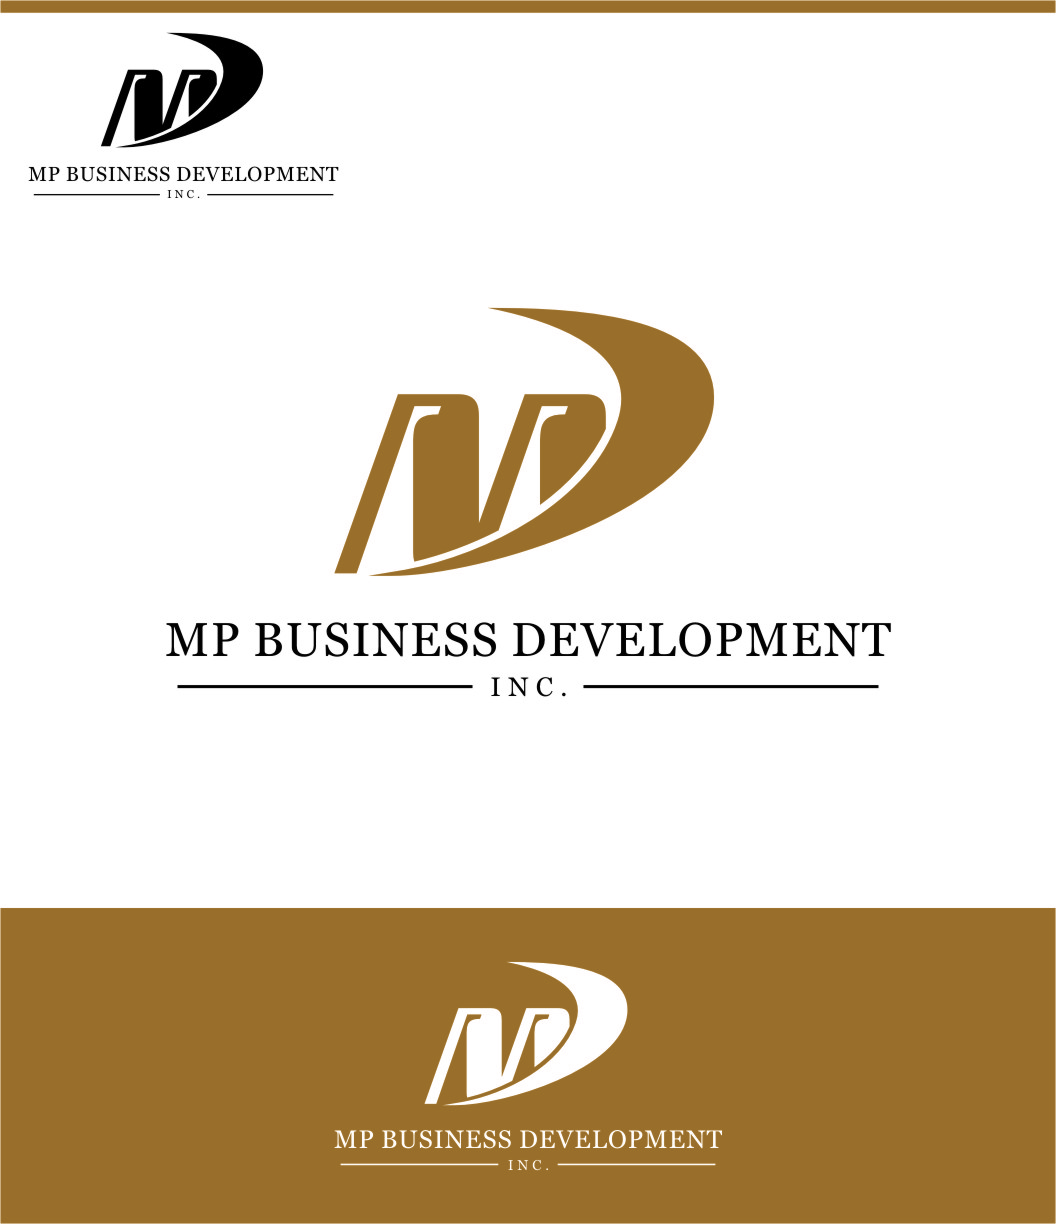 Logo Design by Ngepet_art - Entry No. 133 in the Logo Design Contest MP Business Development Inc. Logo Design.